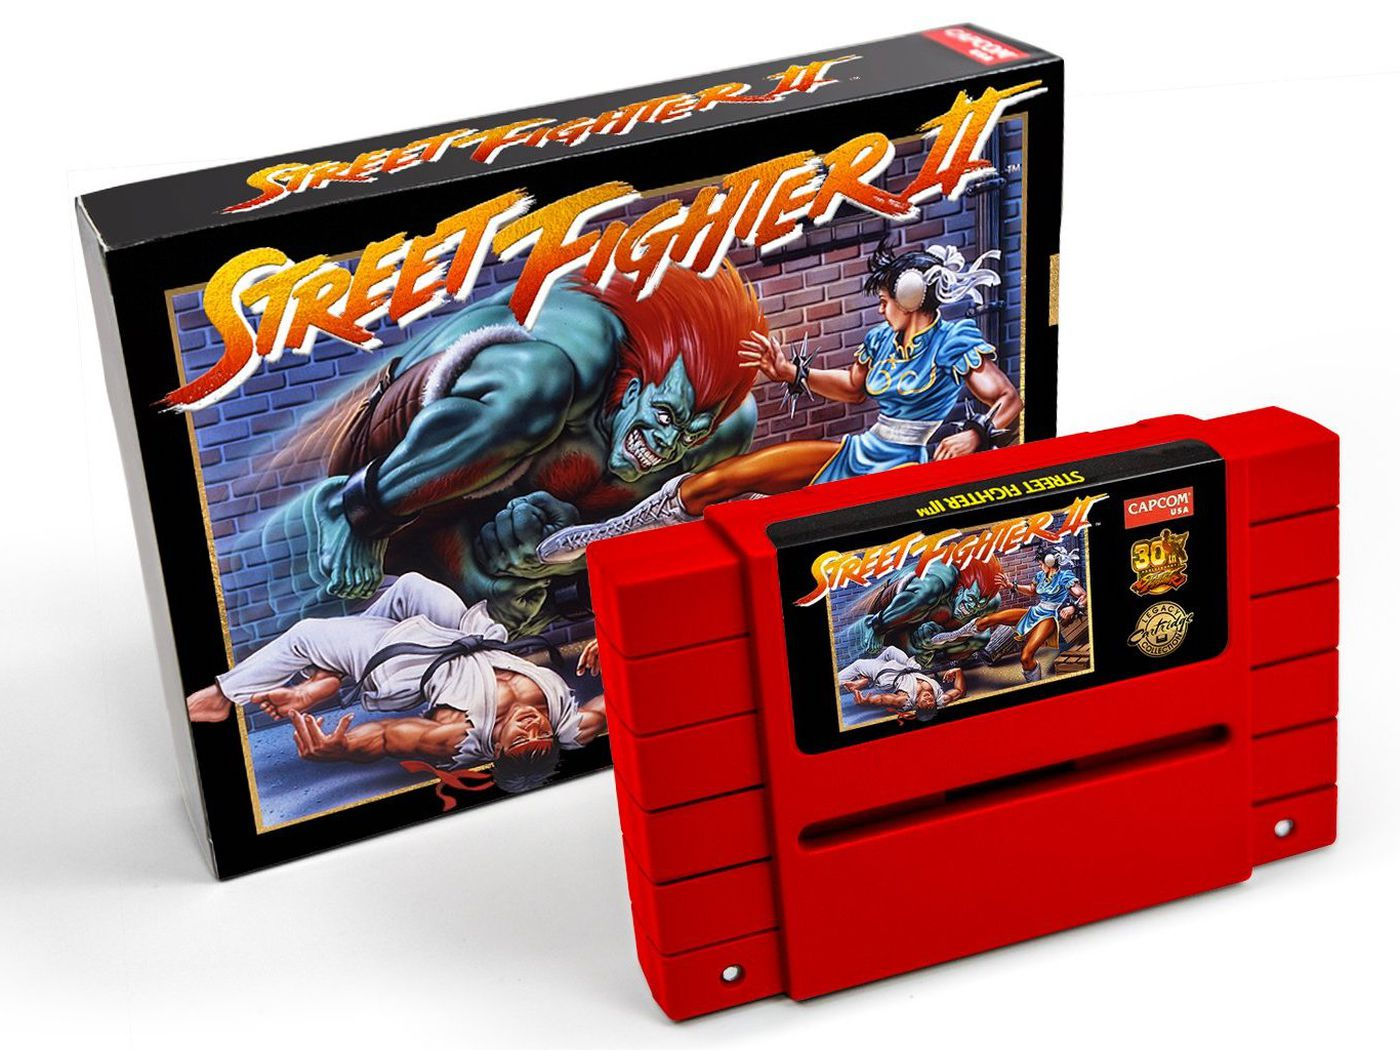 Capcom Re Releases Street Fighter Ii On 100 Cartridge That Might Set Your Snes On Fire The Verge